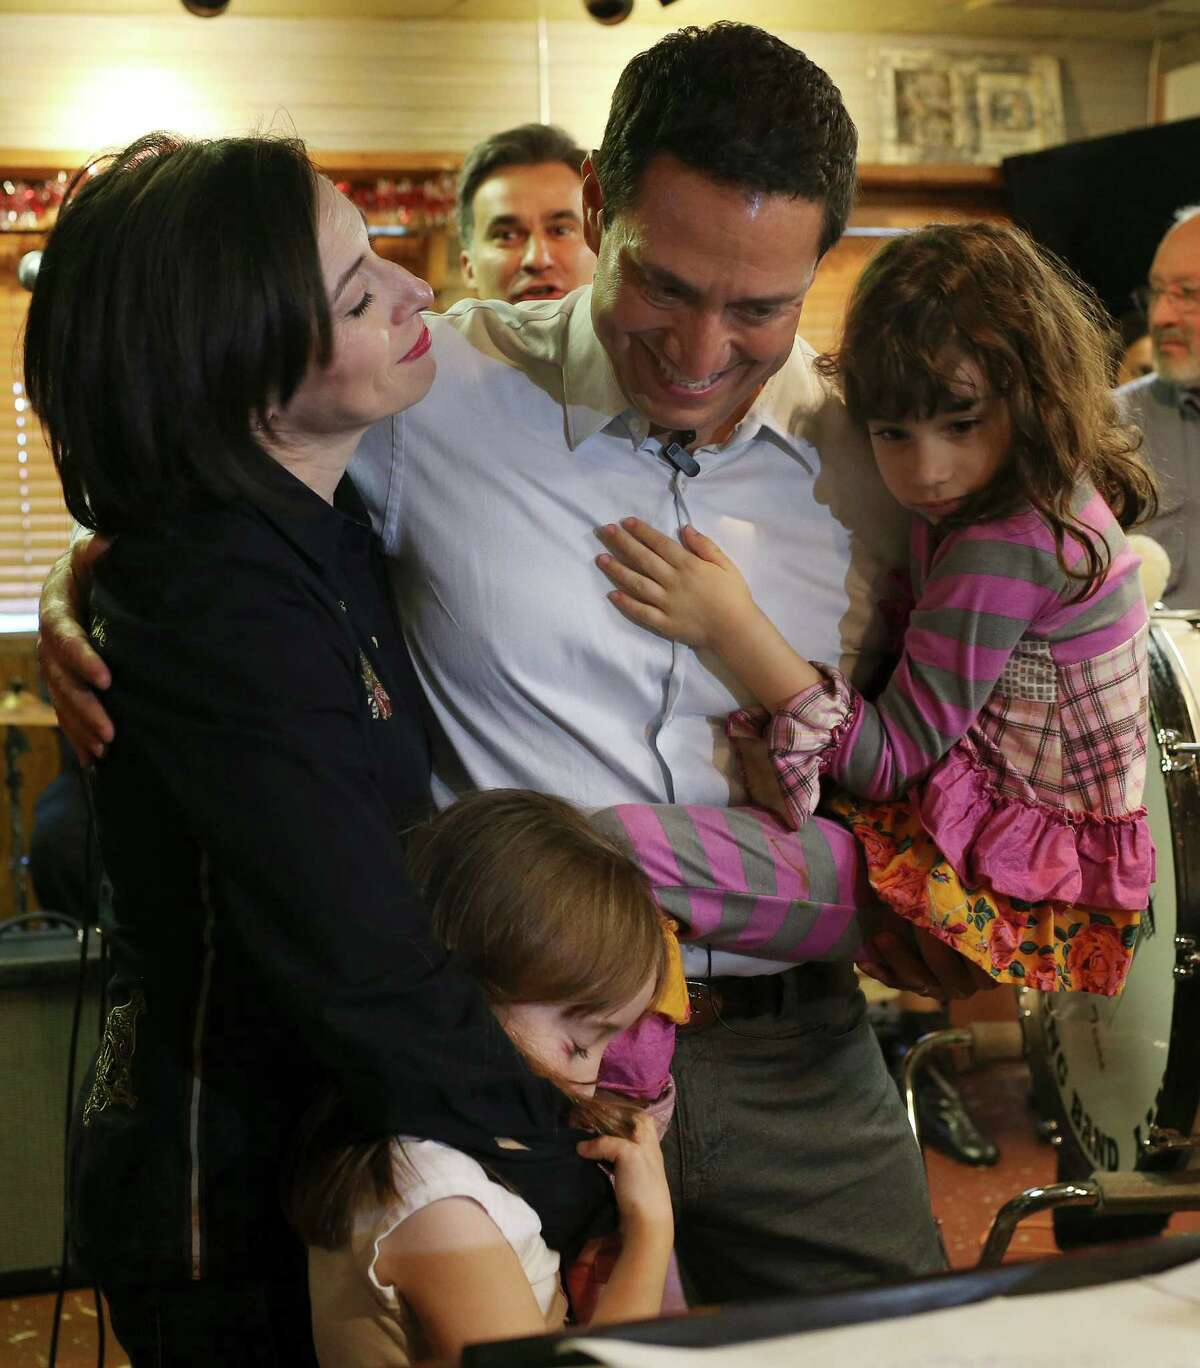 Surrounded by family, Texas State Representative Trey Martinez Fischer announces his candidacy for Texas Senate District District 26 at Henry's Puffy Tacos, Sunday, Dec. 13, 2015. For a second time, Martinez Fischer will face off with Sen. Jose Menendez for the seat vacated by Leticia Van De Putte. Menendez won the special election for the vacated seat in February of this year. With him is his wife, Elizabeth Marie and their two daughters, Francesca, lower left, and Camila.